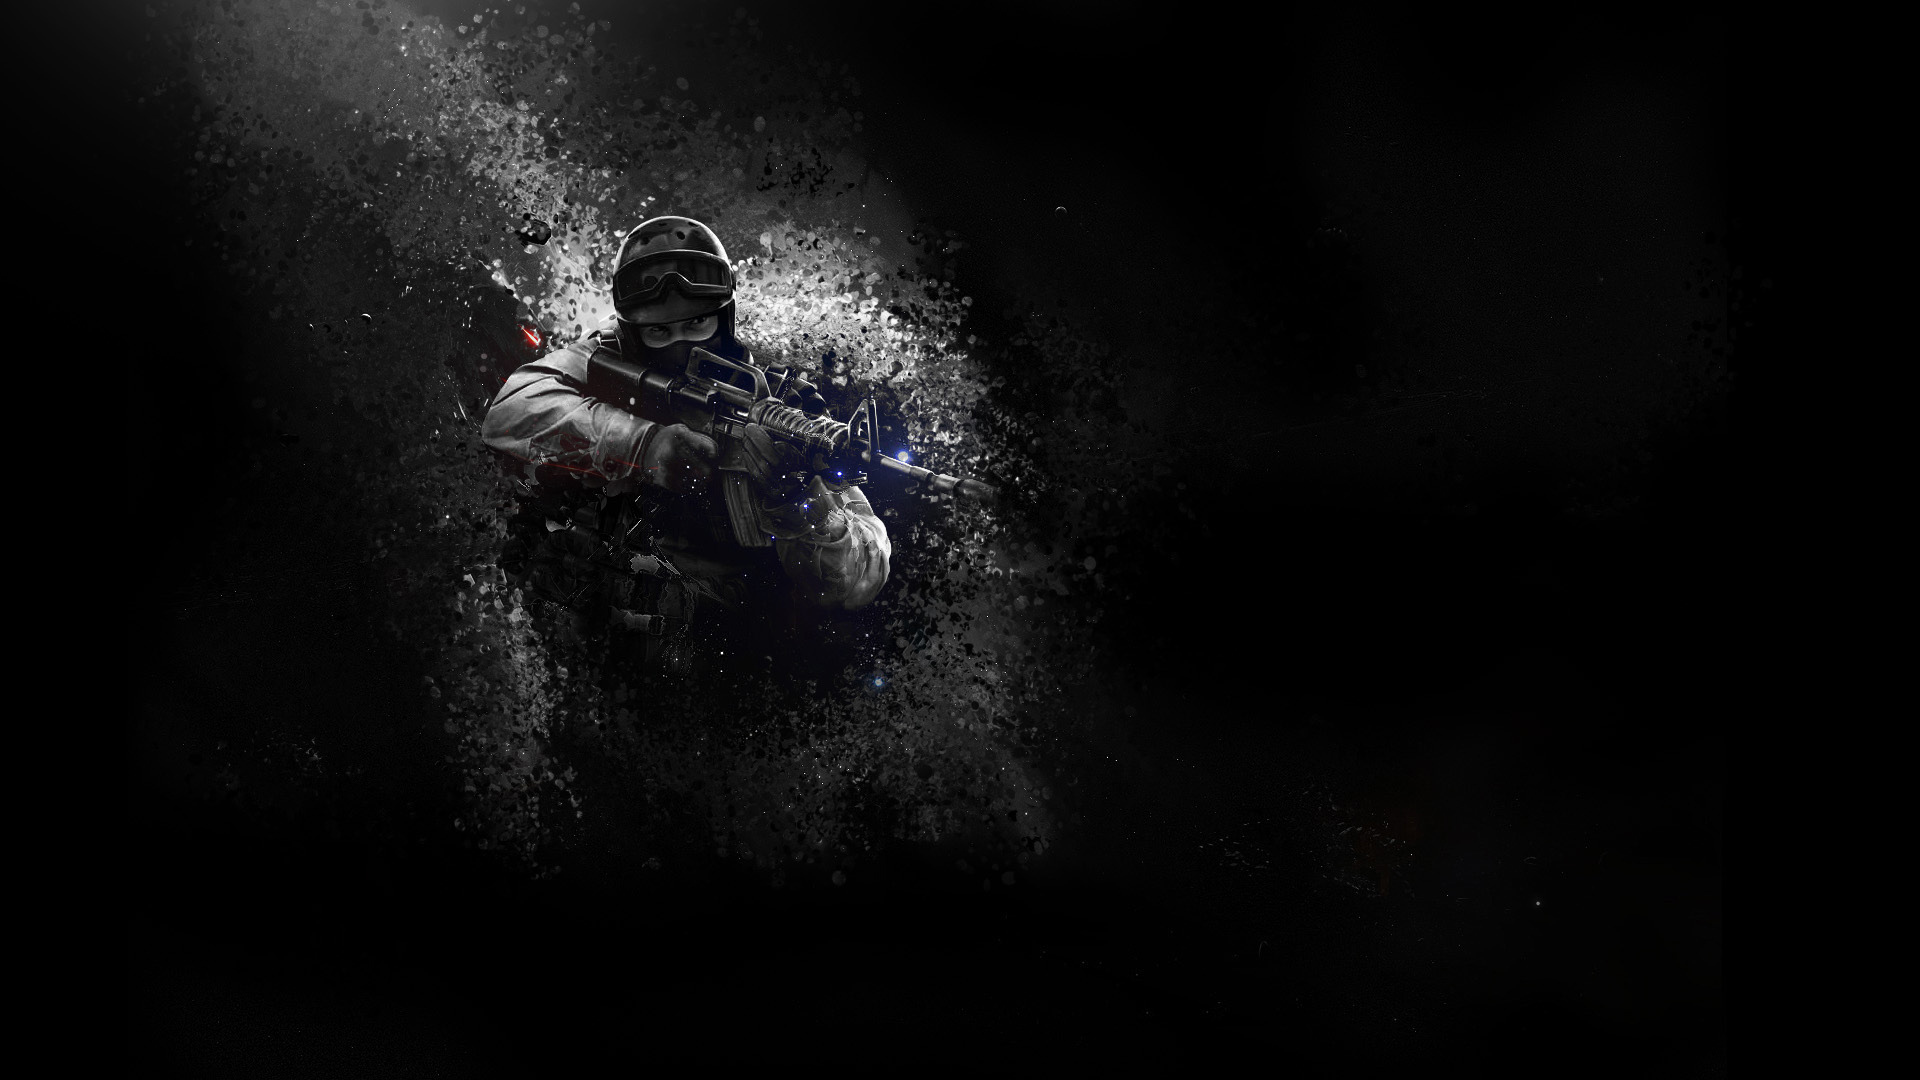 Pubg Black And White Wallpaper Hd: CS GO Wallpaper HD